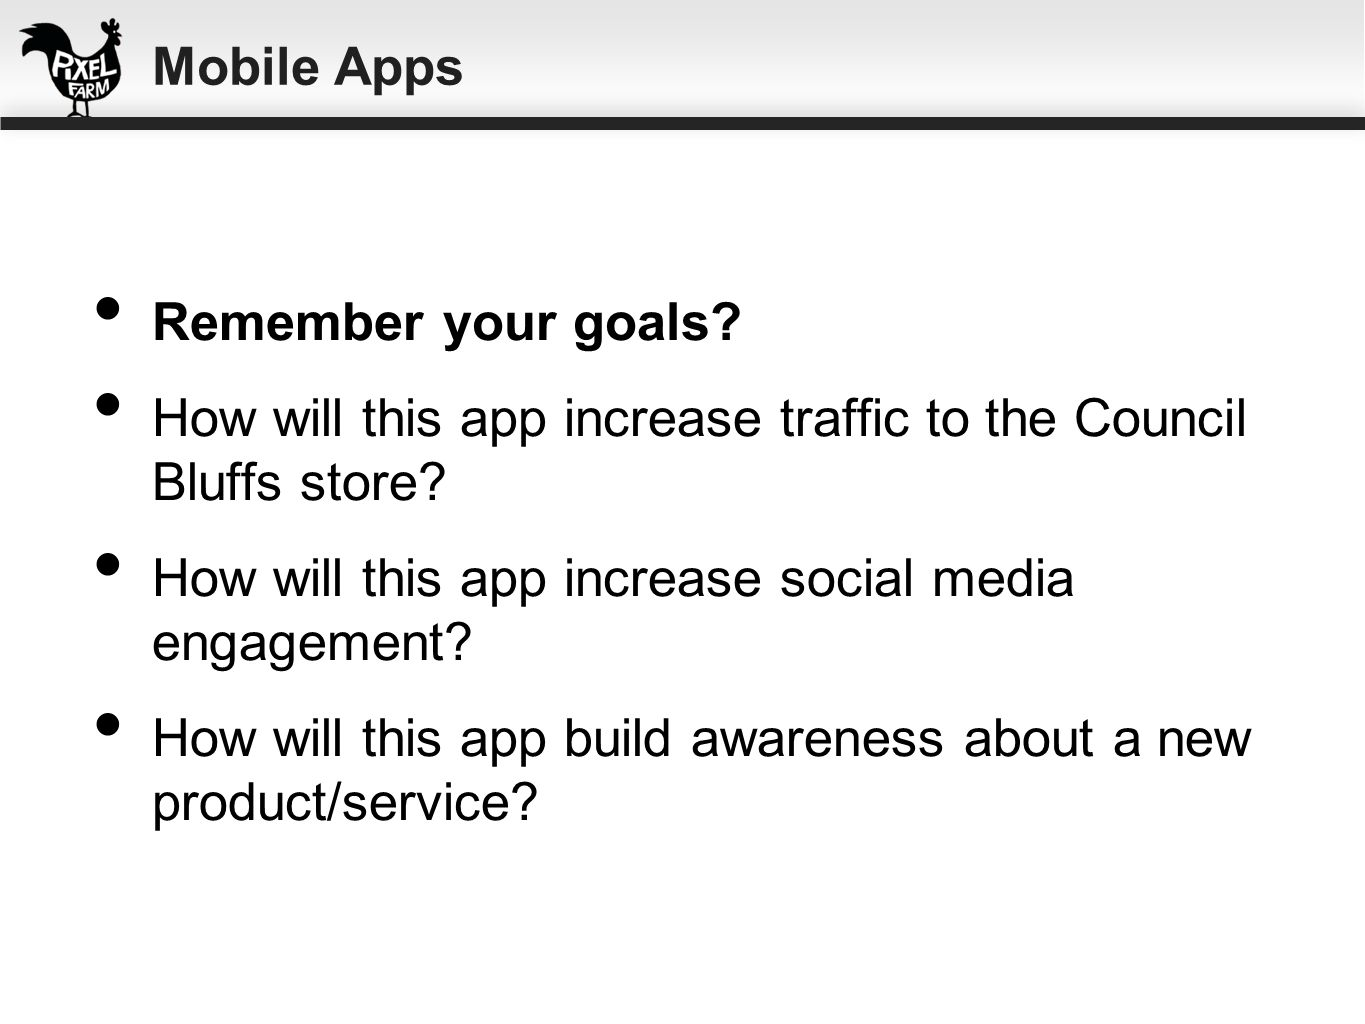 Remember your goals? How will this app increase traffic to the Council Bluffs store? How will this app increase social media engagement? How will this